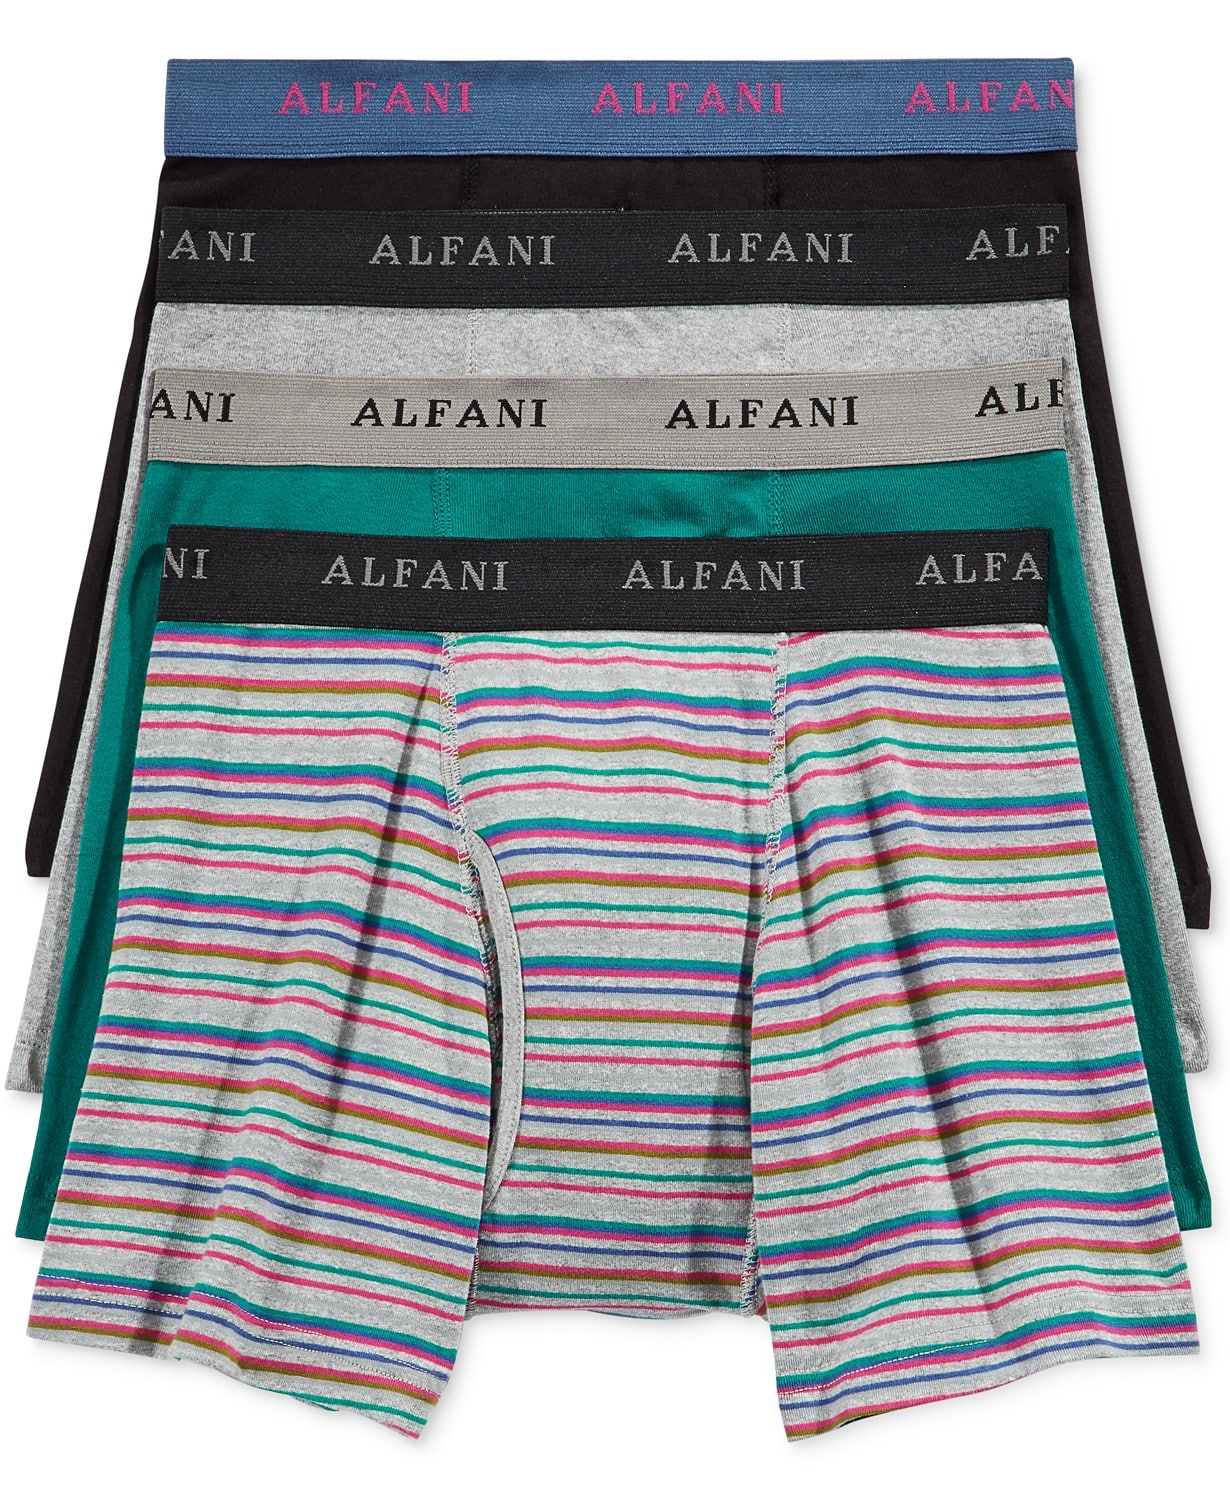 Alfani Men's Striped Boxer Briefs 4 for $8.50 ($2.12 each) + free store pickup at Macys